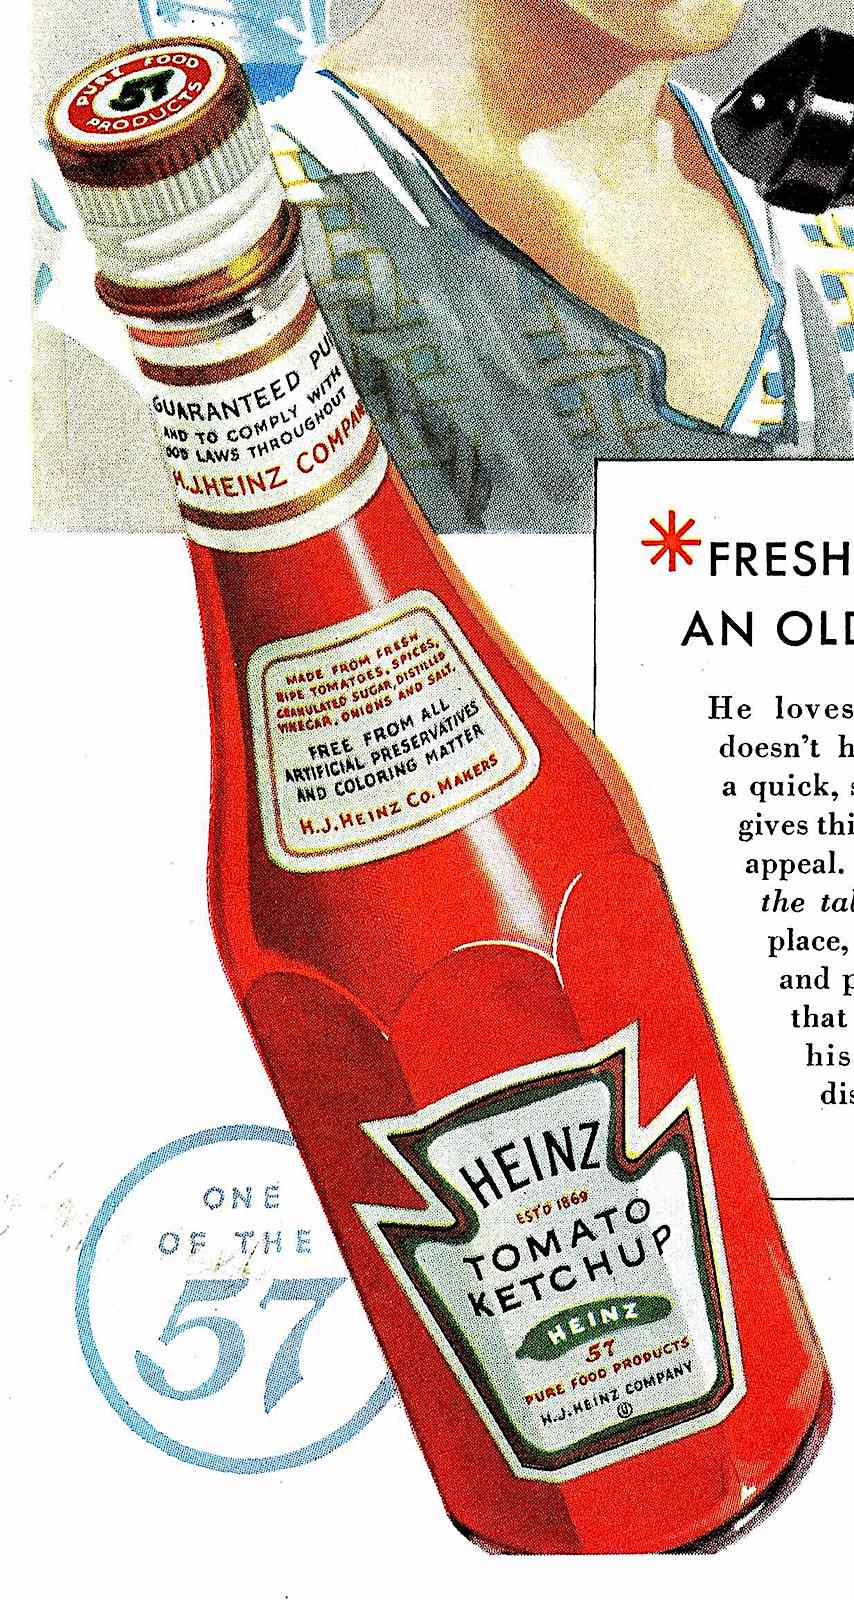 Heinz Ketchup in a bottle 1934 in a color illustration